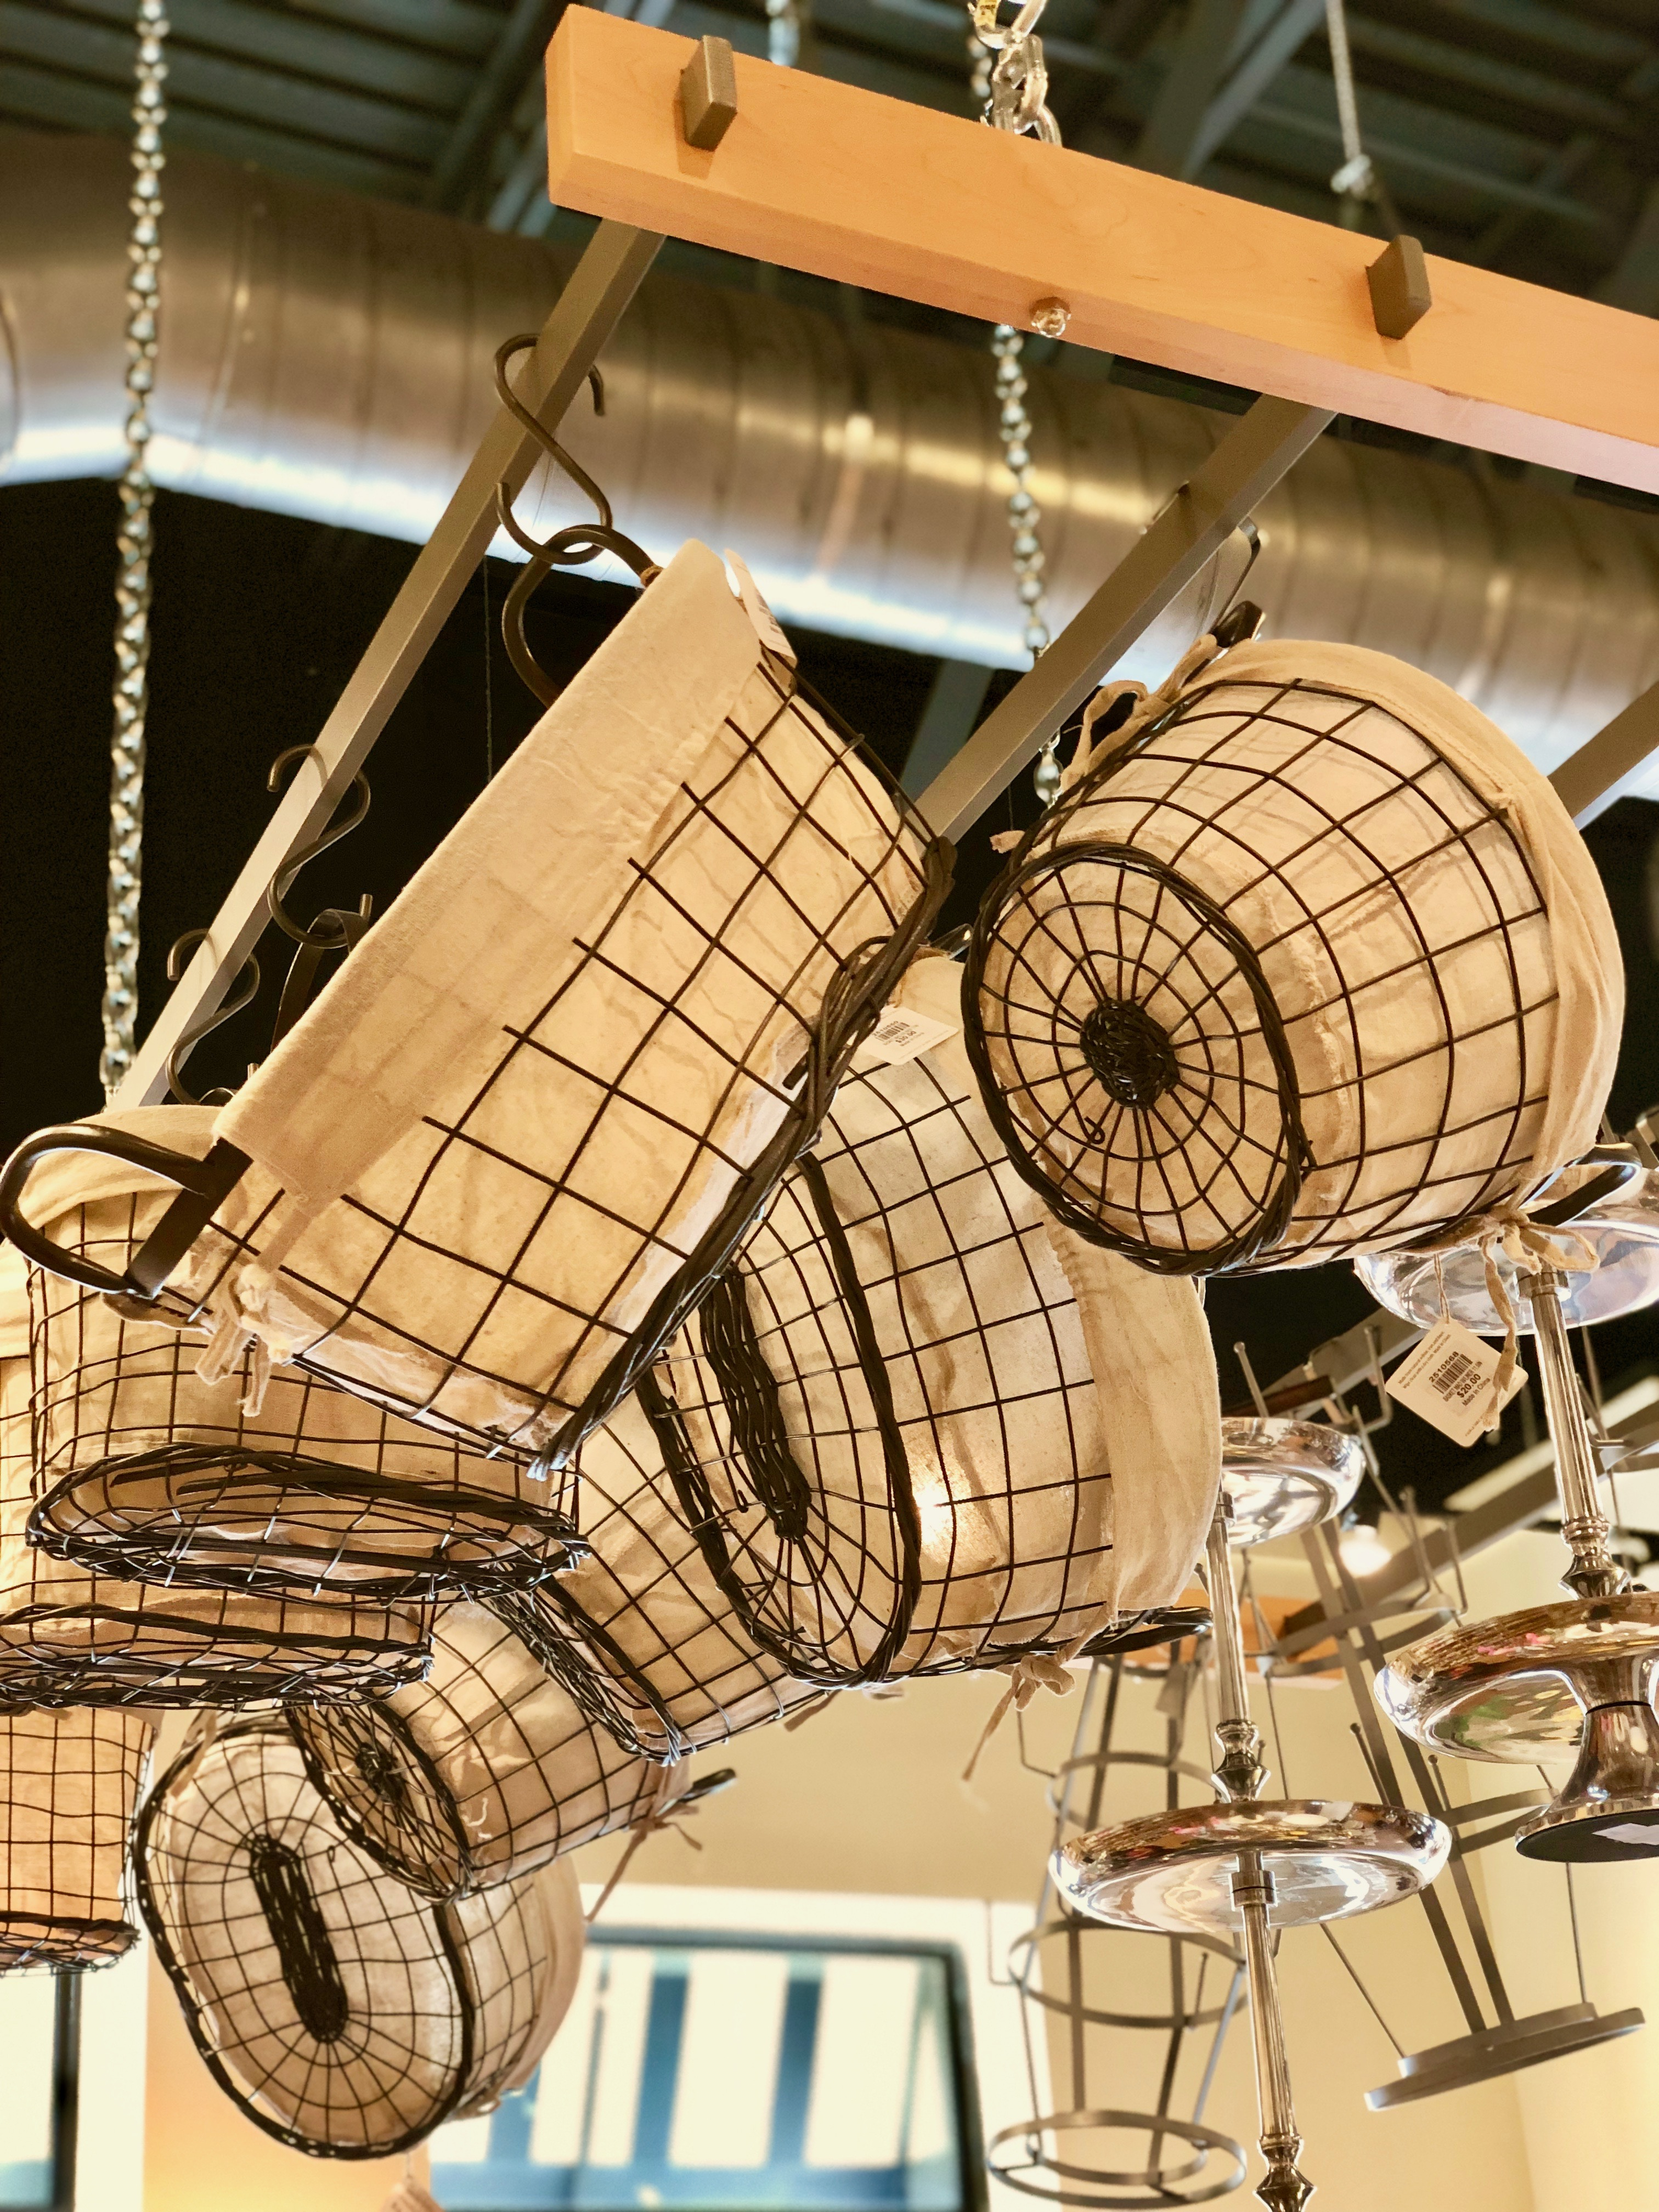 Large wire serving baskets hanging from the ceiling on a hanging rack